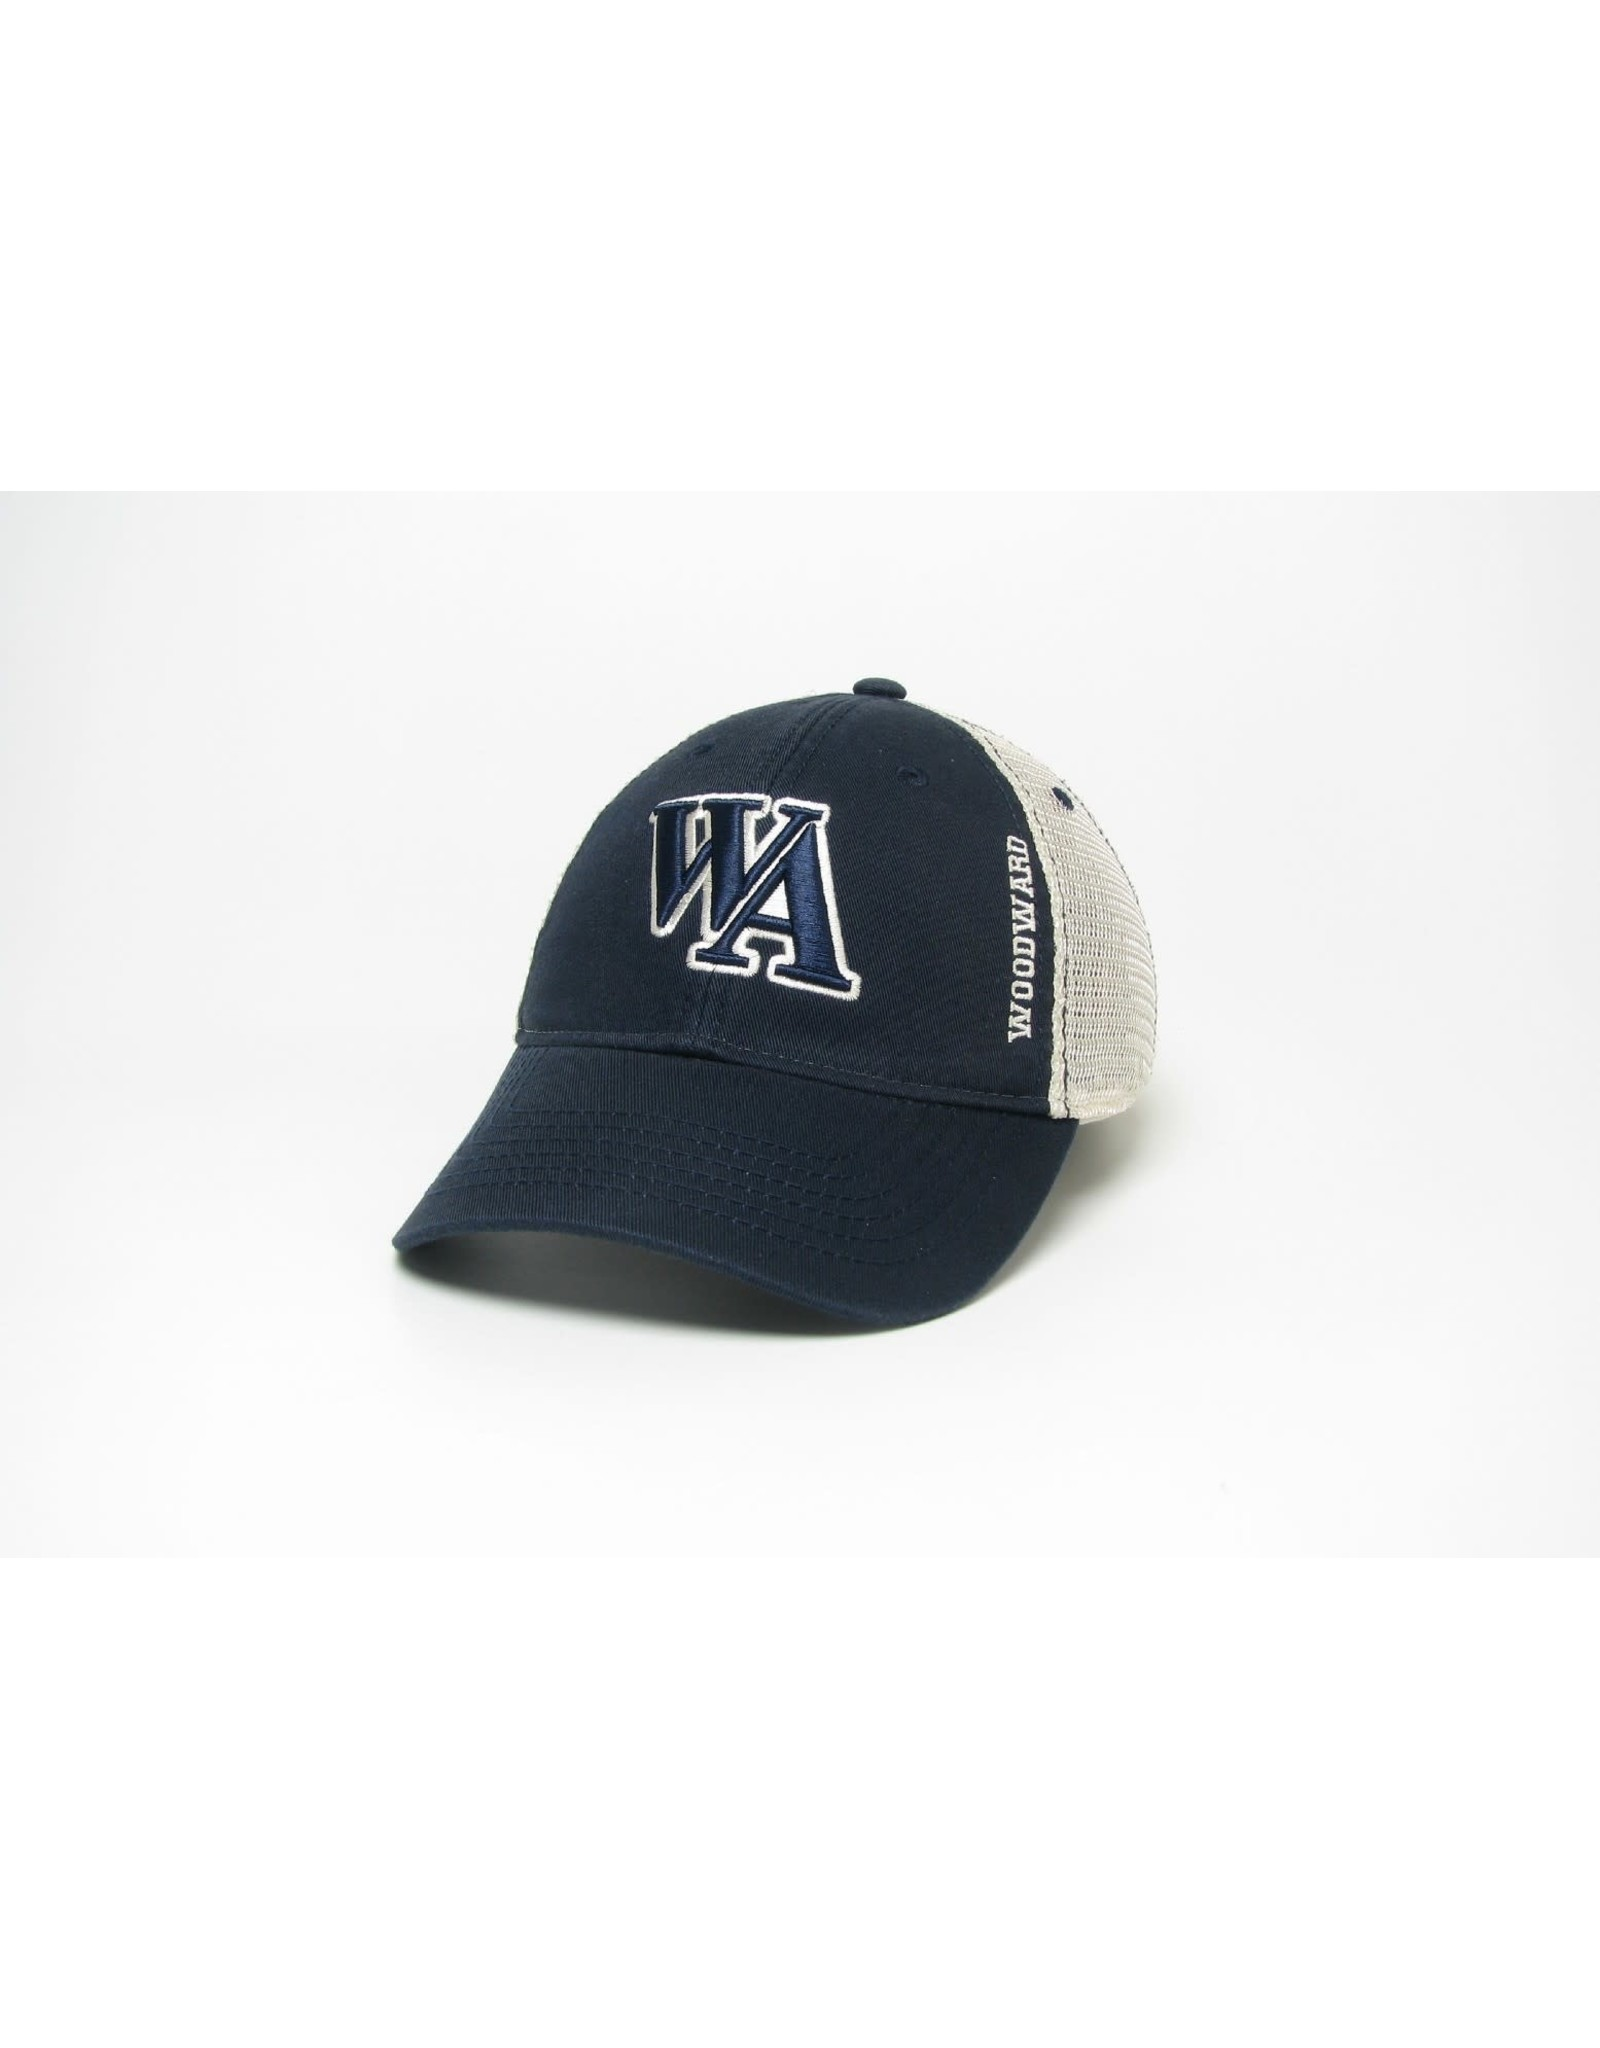 Legacy CAP Navy/Cream Relaxed Twill Trucker by Legacy